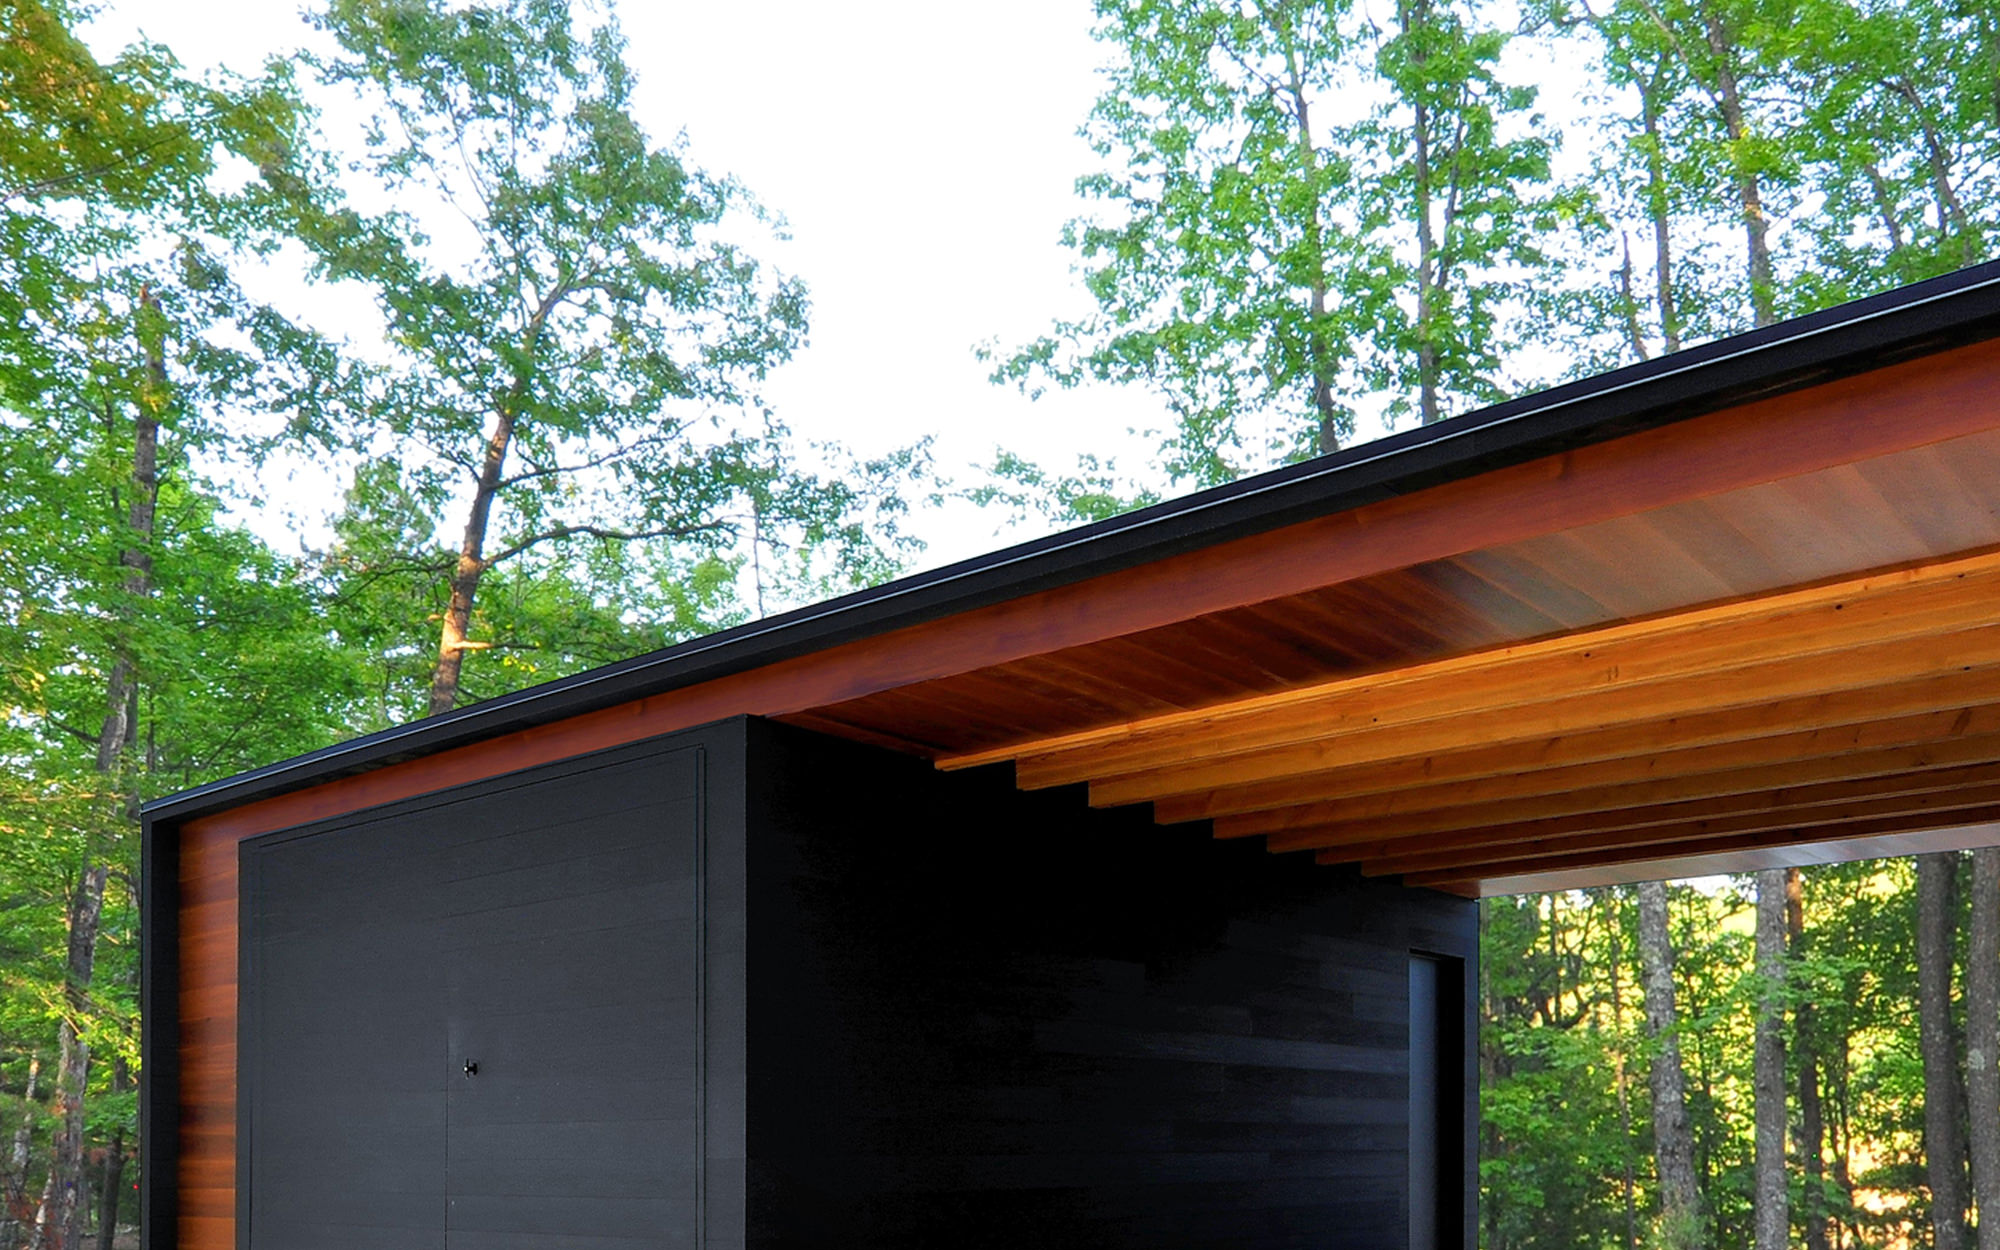 Johnsen Schmaling Architects Run Electrical Wires Underground To Reach Sheds Lights Patios And Linear Cabin